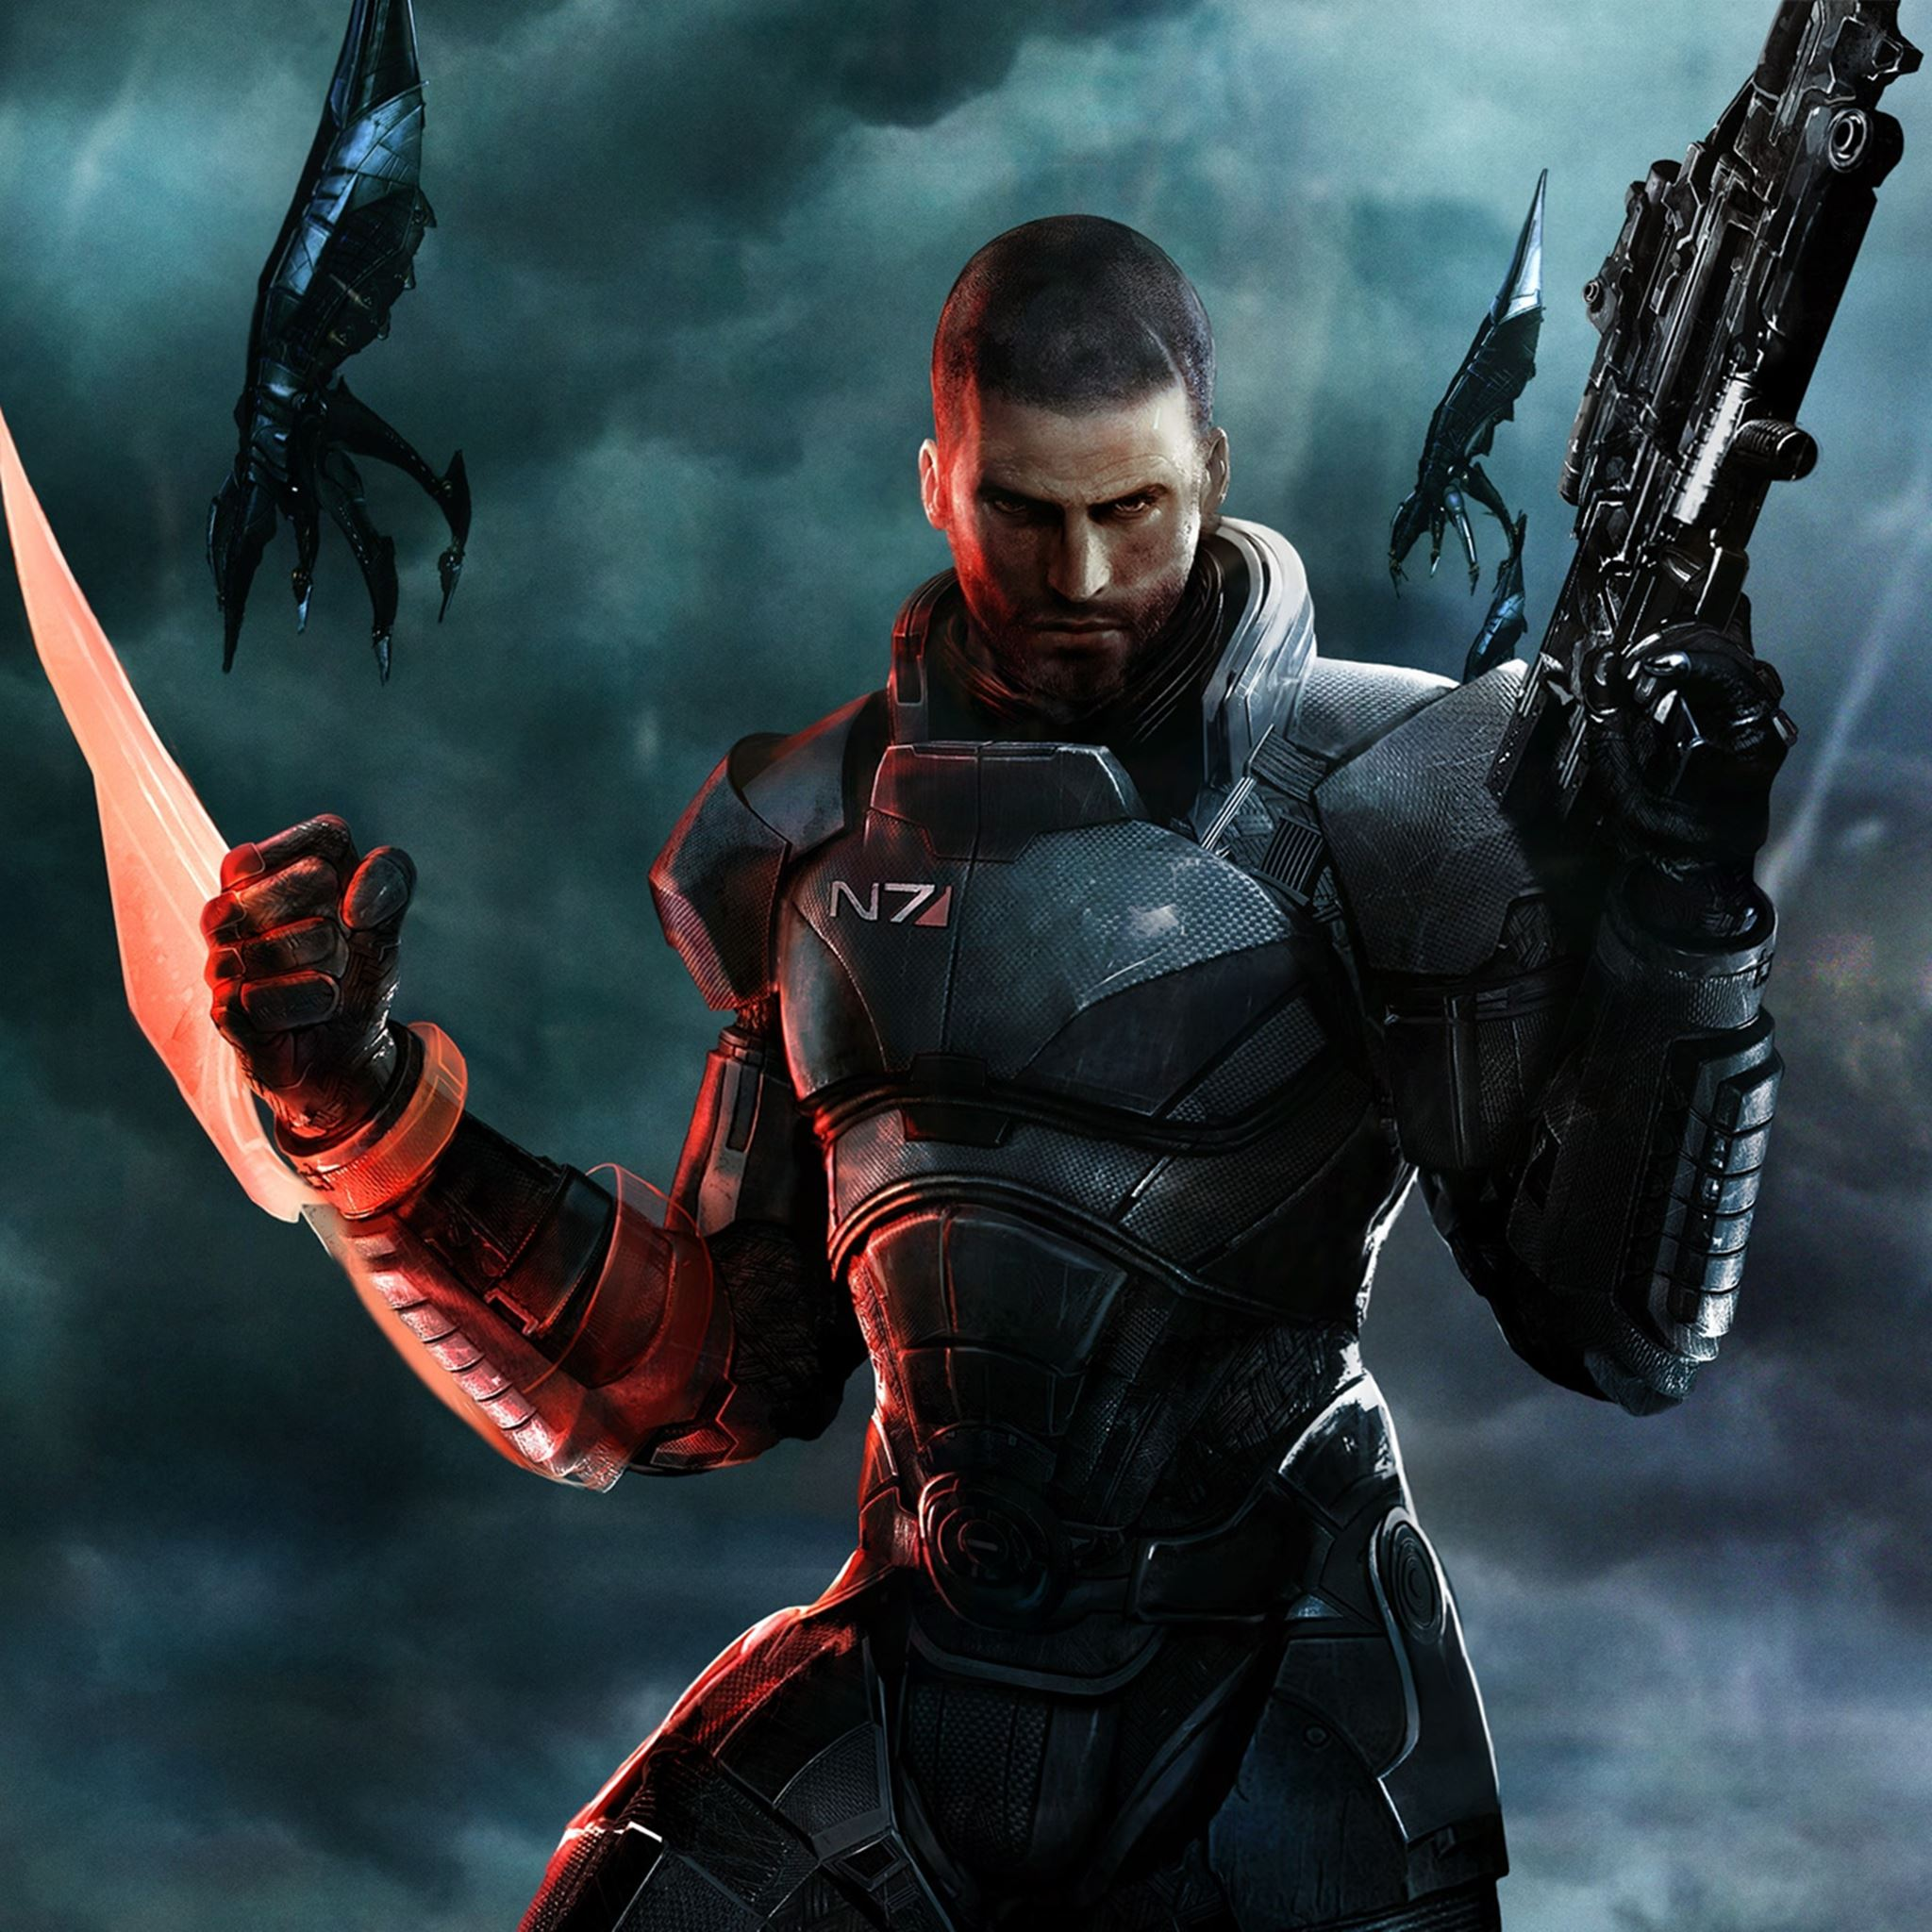 Mass Effect 3 IPad Air Wallpapers Free Download